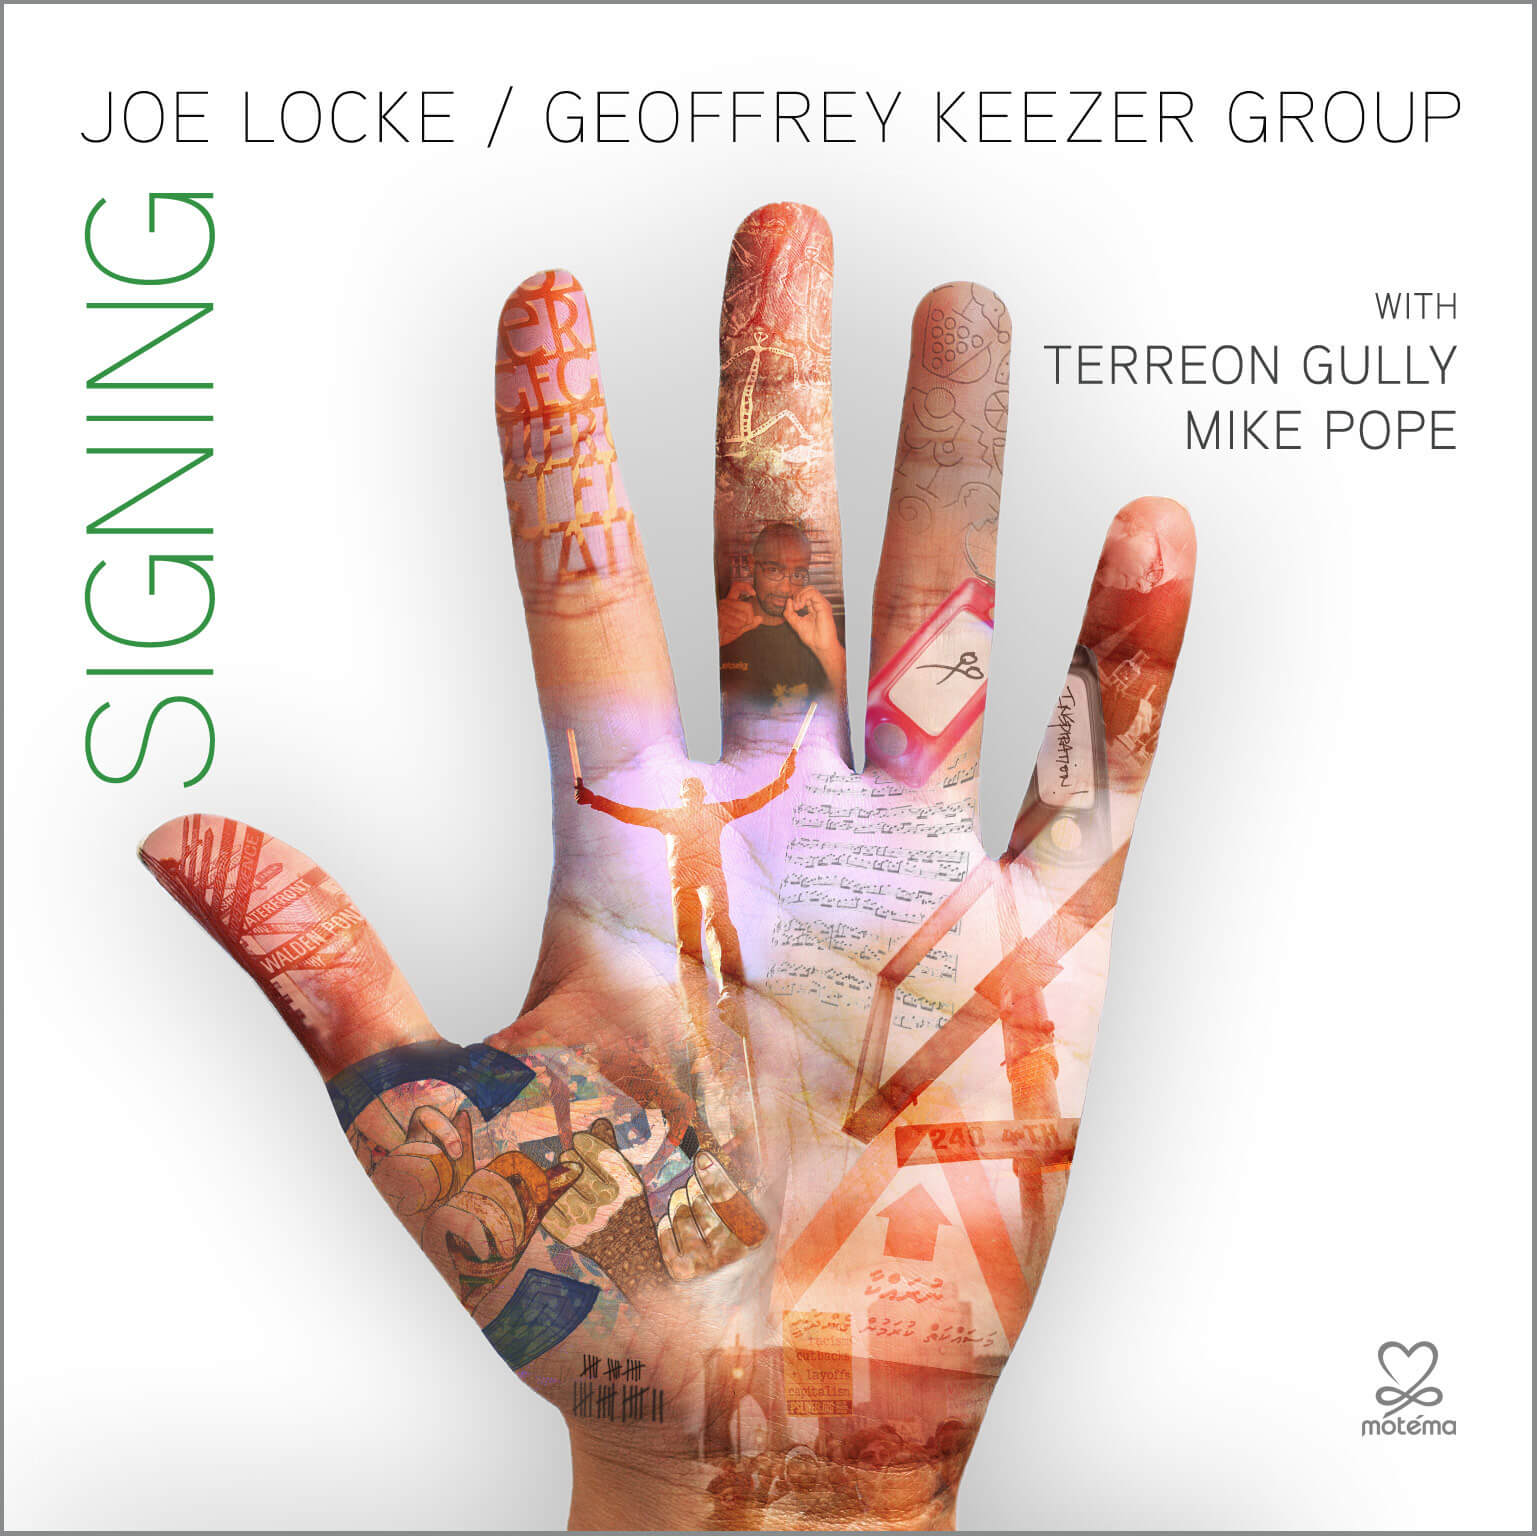 Joe Locke / Geoffrey Keezer Group – SIGNING